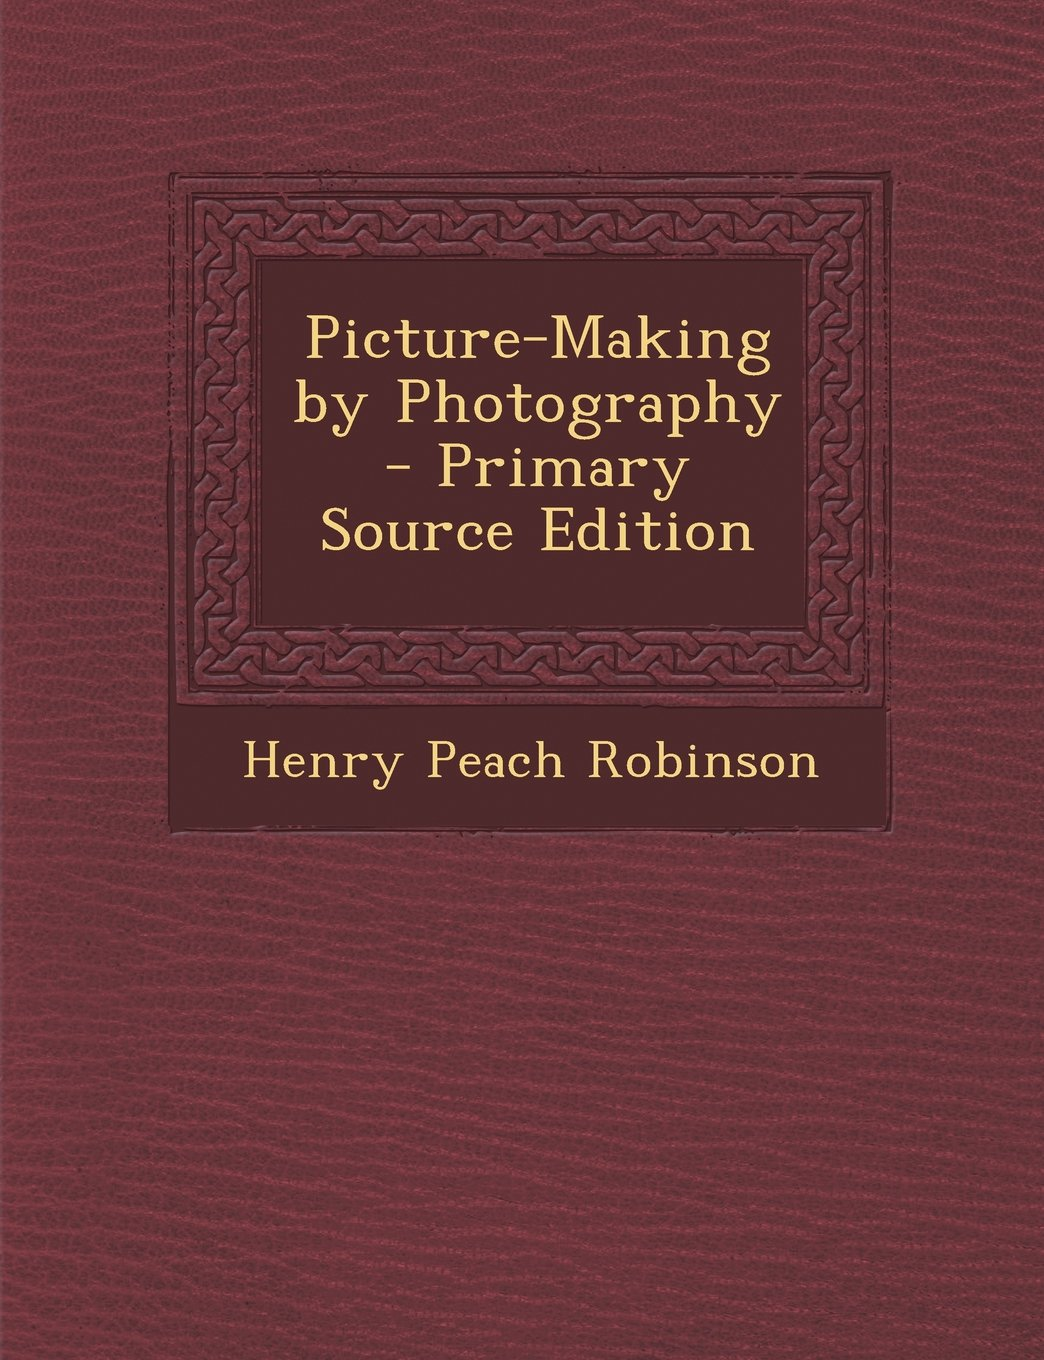 Picture-Making by Photography - Primary Source Edition pdf